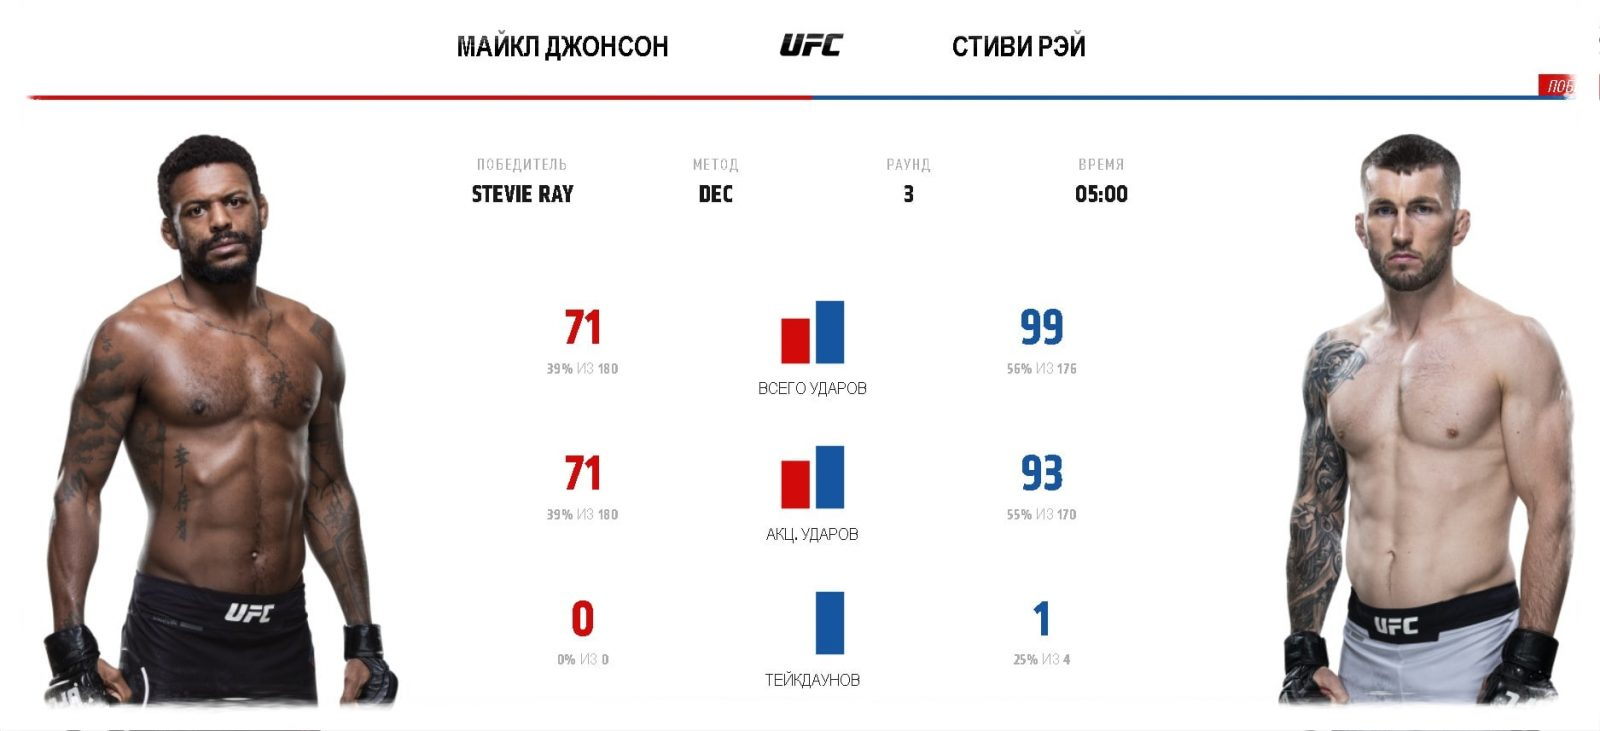 video-boya-majkl-dzhonson-stivi-rej-ufc-fight-night-162